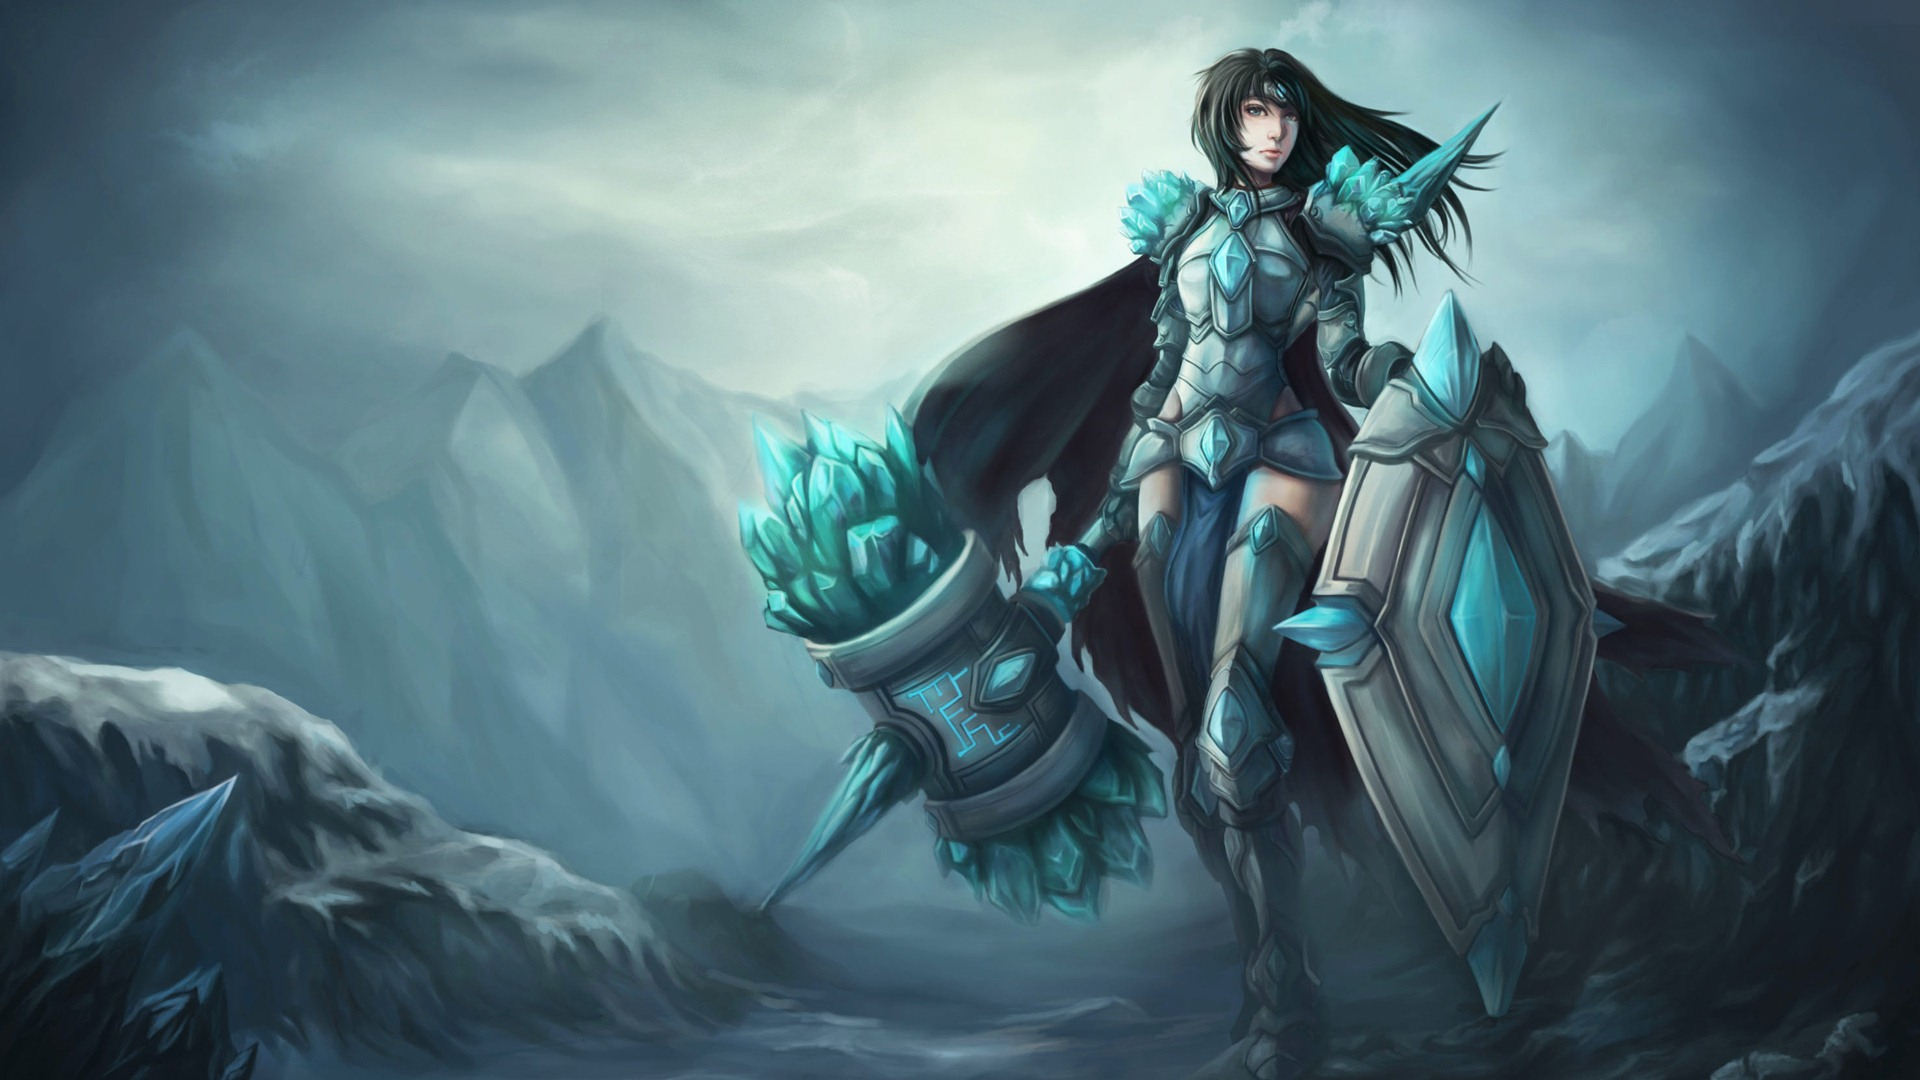 League of Legends beautiful girl wallpapers #10 - 1920x1080.